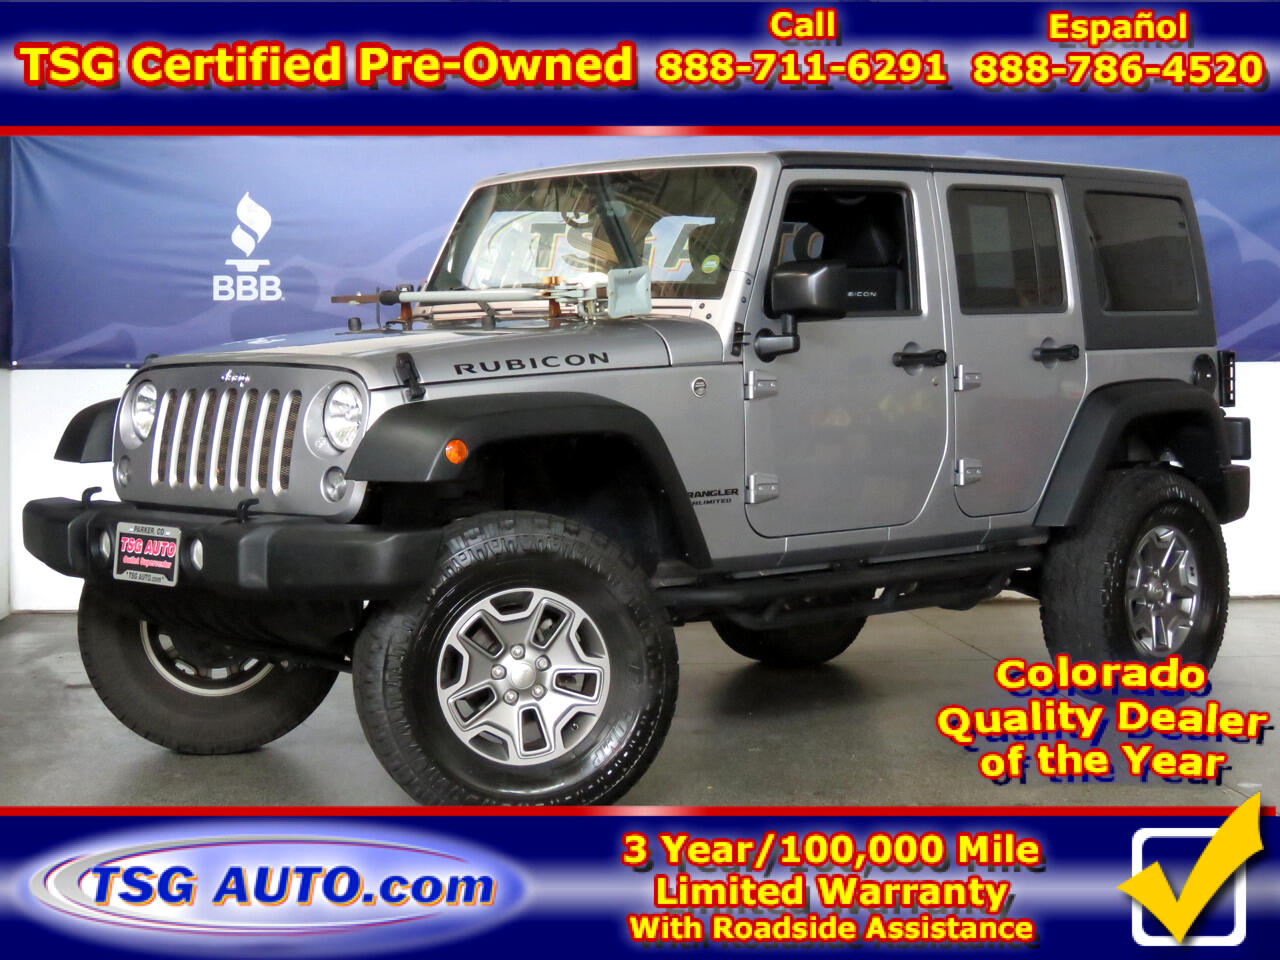 2016 Jeep Wrangler Unlimited 4WD Rubicon W/Custom Lift/Running boards